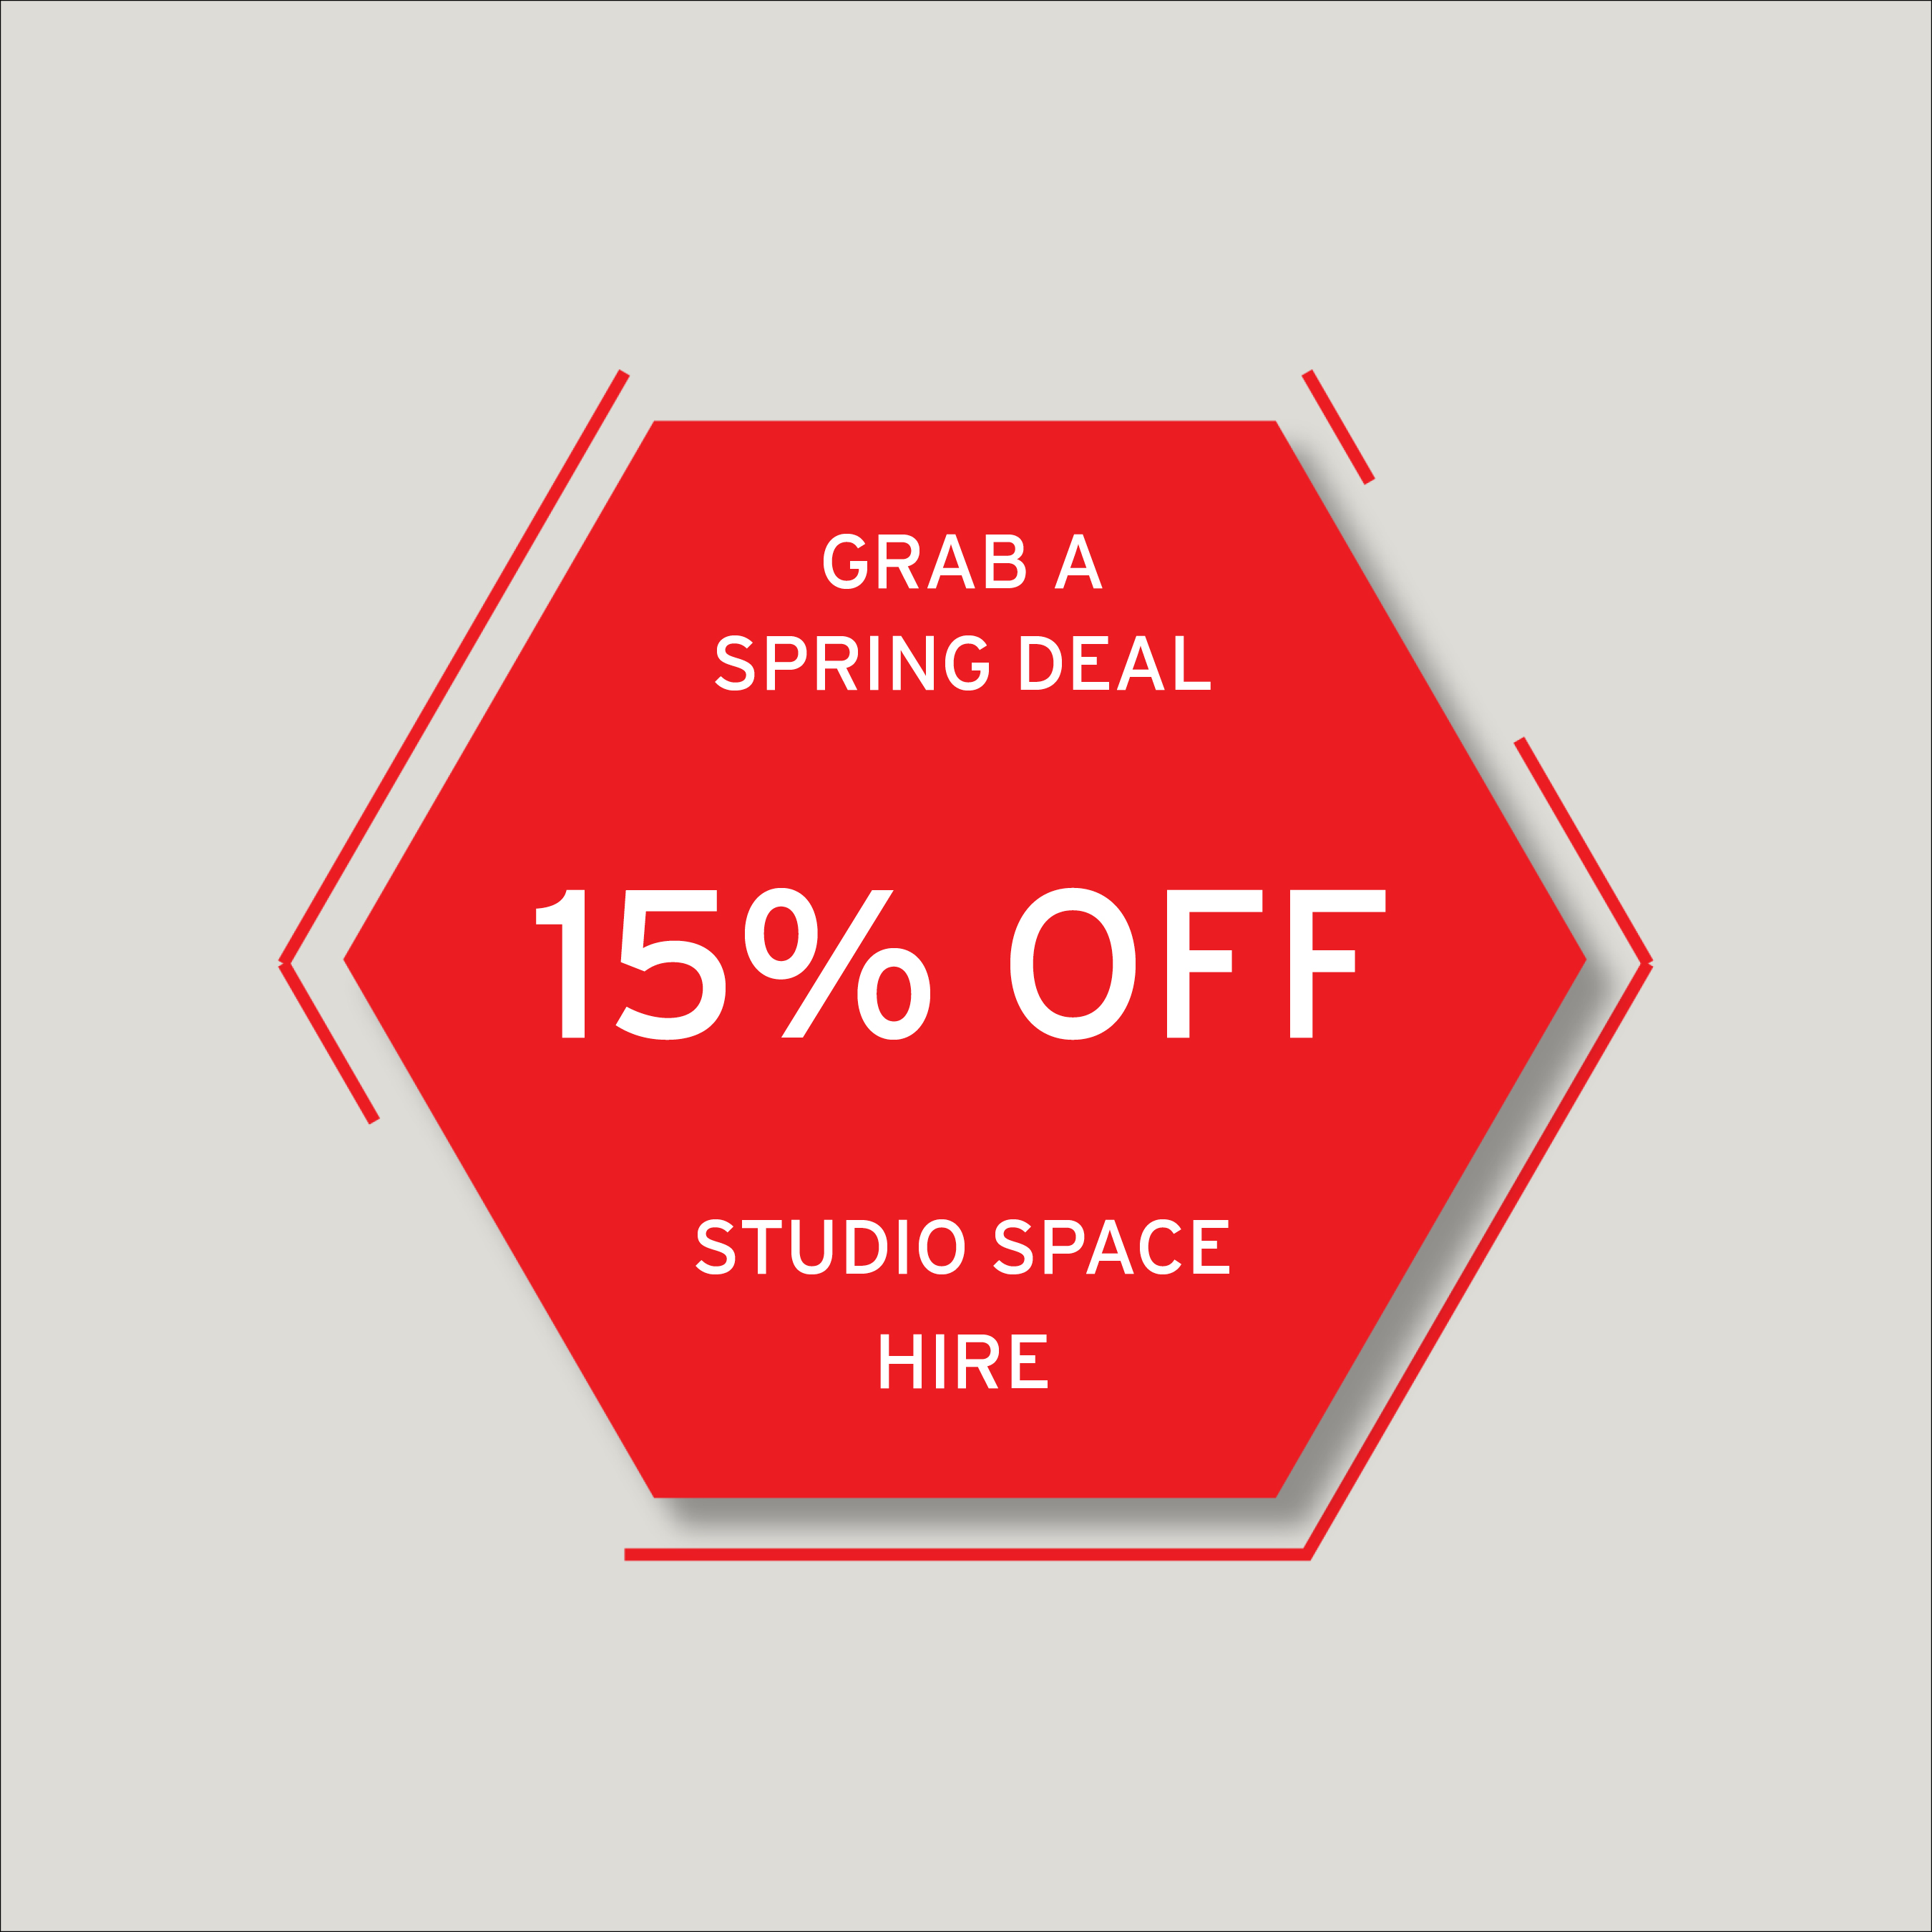 Spring deal - 15% off at HAVEN! 1